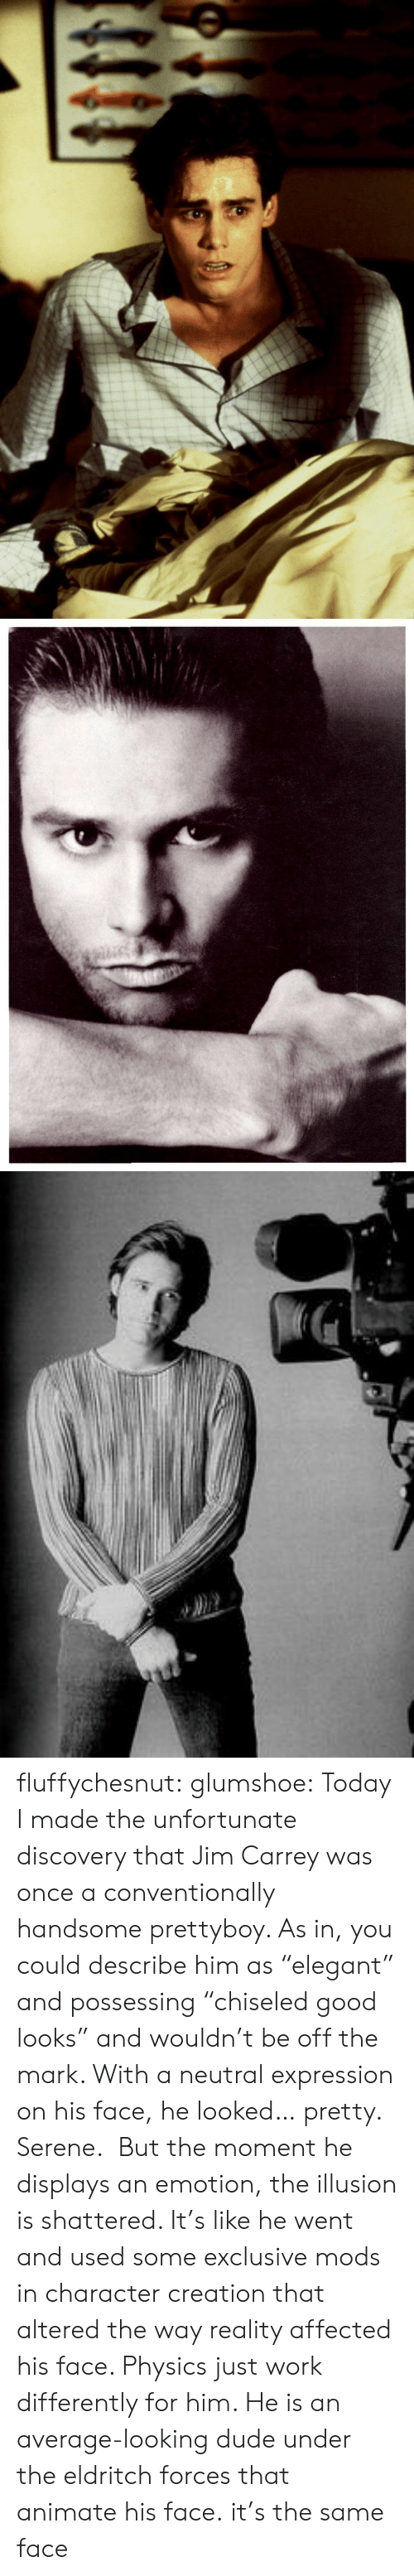 """Dude, Jim Carrey, and Tumblr: fluffychesnut:  glumshoe:  Today I made the unfortunate discovery that Jim Carrey was once a conventionally handsome prettyboy. As in, you could describe him as""""elegant"""" and possessing""""chiseled good looks"""" and wouldn't be off the mark. With a neutral expression on his face, he looked… pretty. Serene. But the moment he displays an emotion, the illusion is shattered. It's like he went and used some exclusive mods in character creation that altered the way reality affected his face. Physics just work differently for him. He is an average-looking dude under the eldritch forces that animate his face.  it's the same face"""